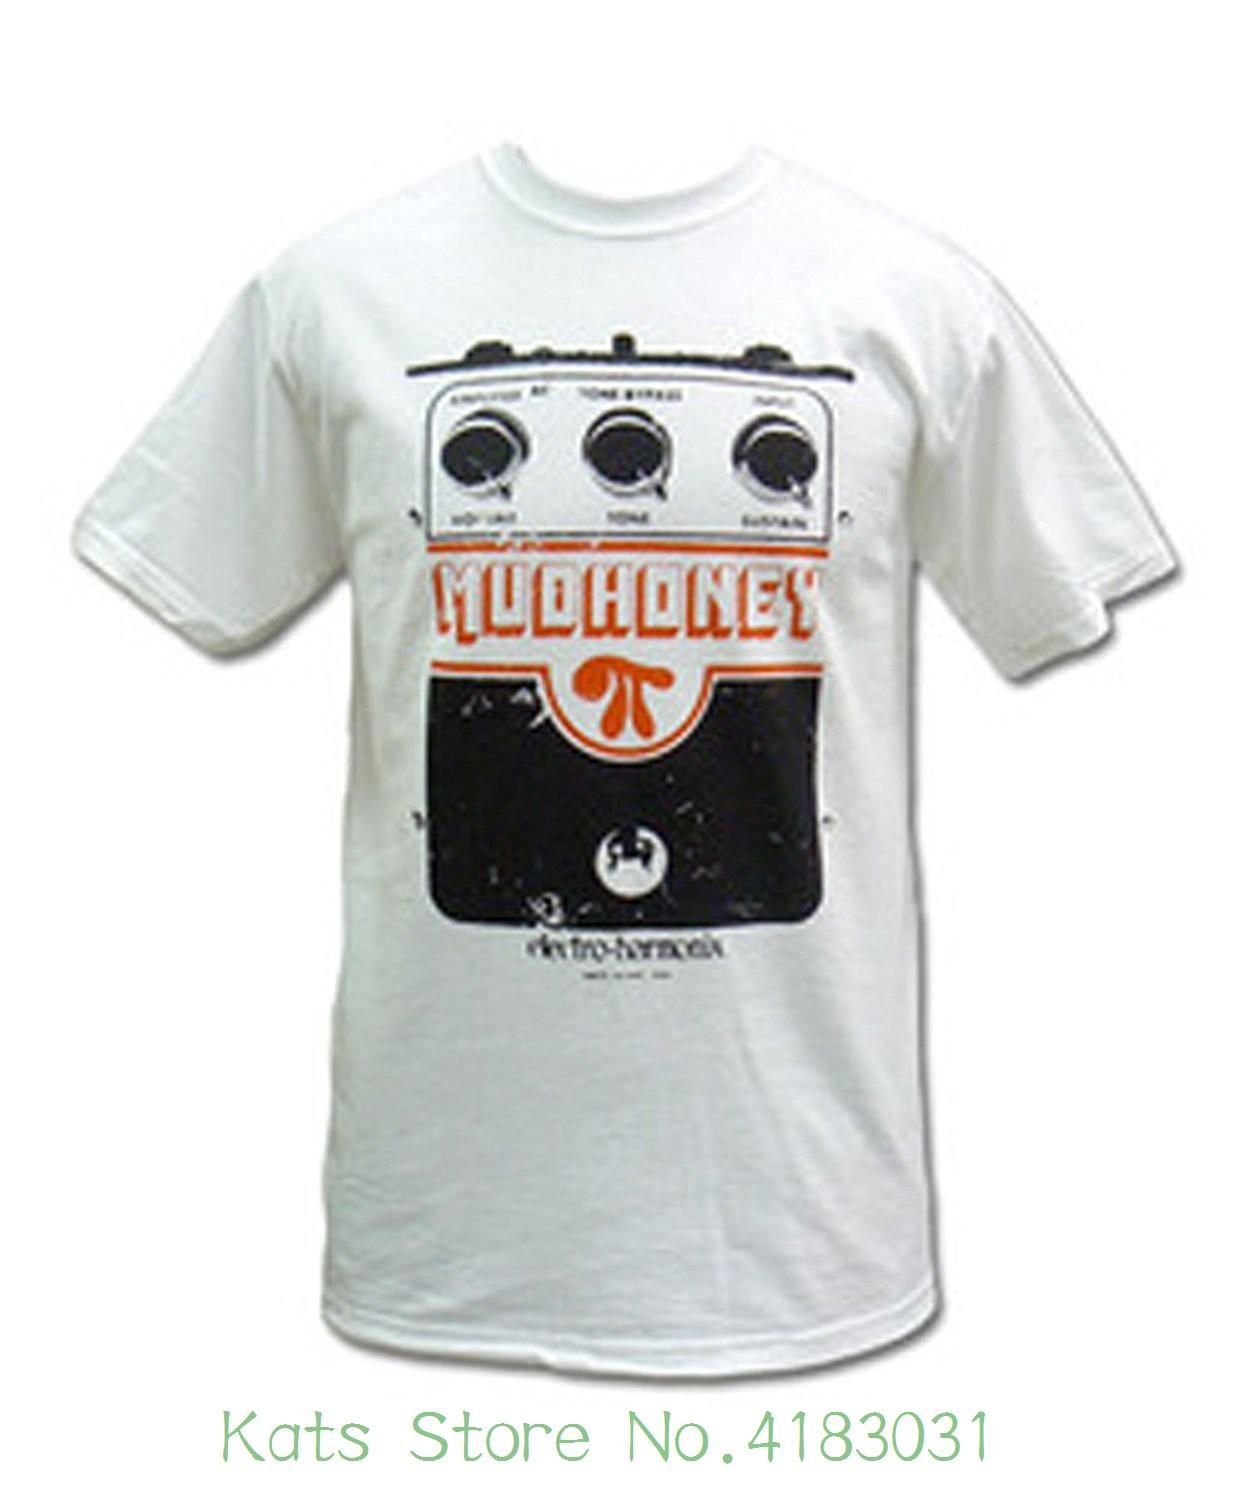 Mudhoney Superfuzz T shirt Quality T Shirts Men Printing Short Sleeve O Neck Tshirt